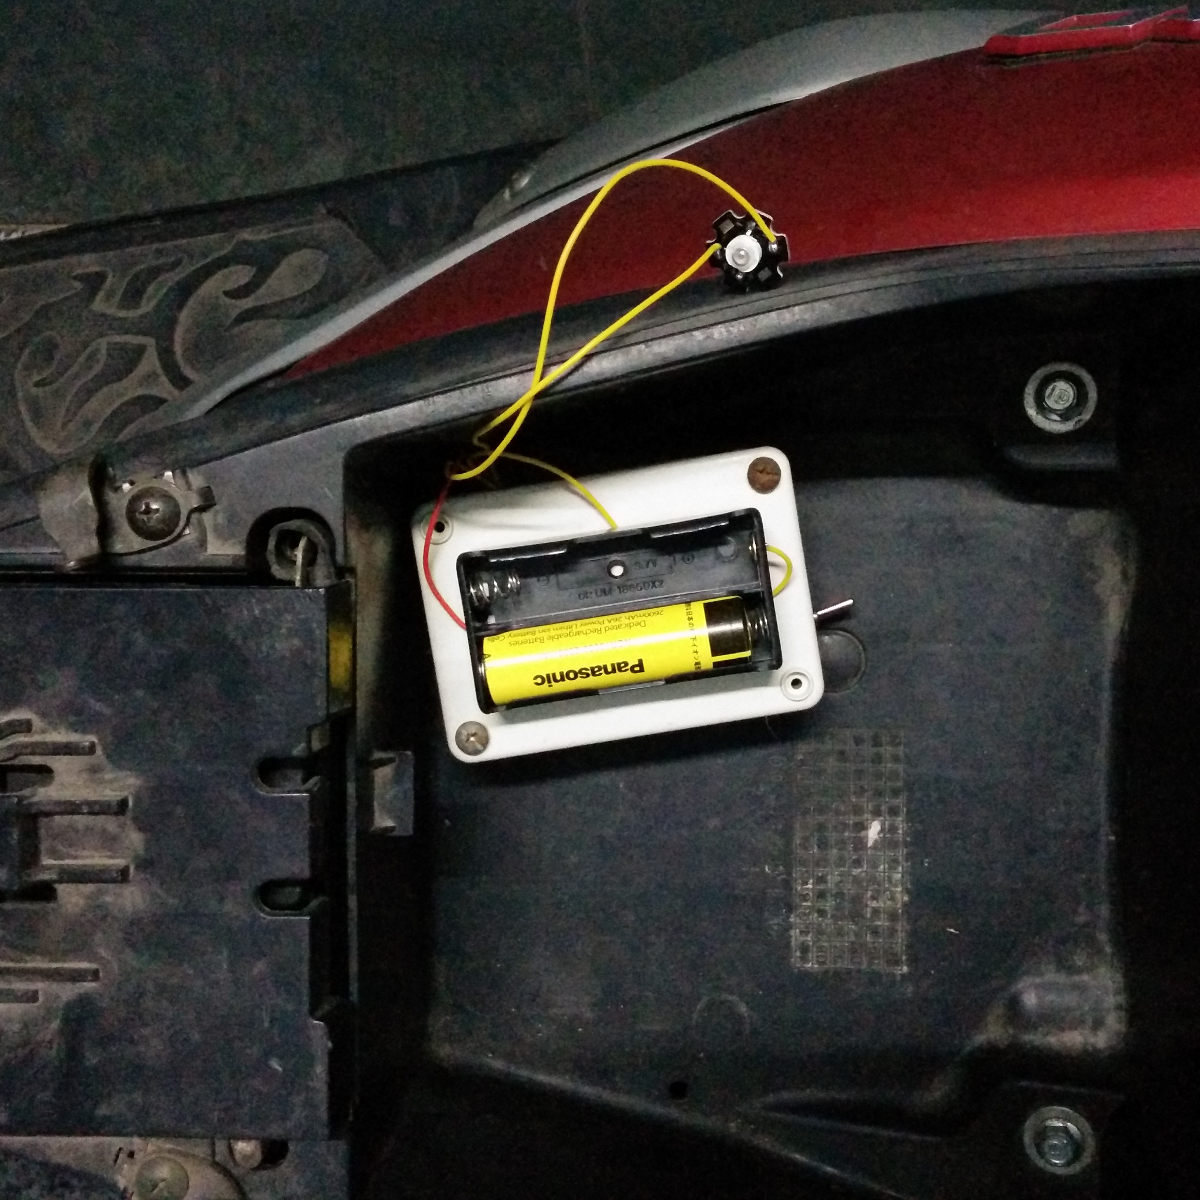 Finding Your Motorbike Using Wi-Fi | Hackaday